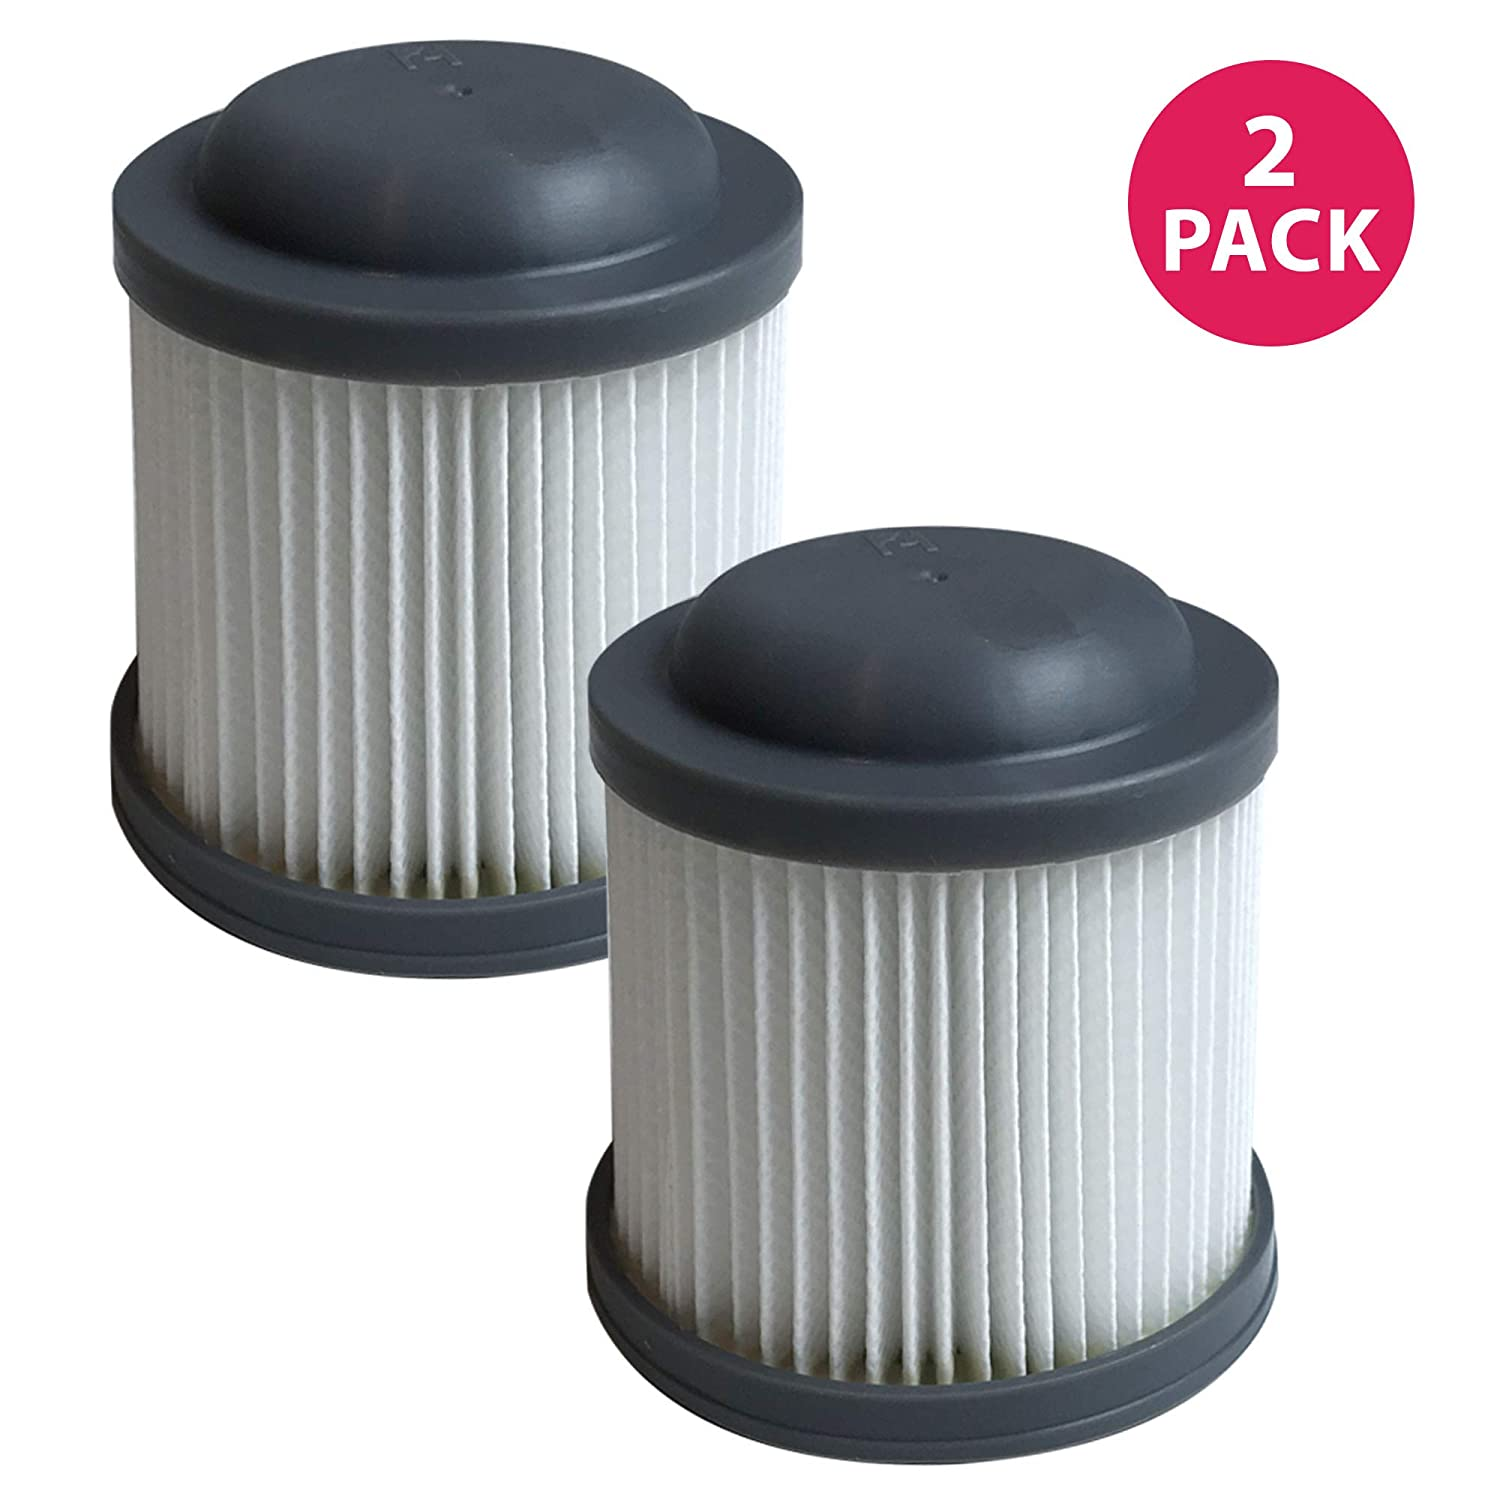 Think Crucial Replacement Vacuum Filters Compatible with Black and Decker Vacuums, Washable and Reusable Filter Part - Parts VF100, VF100H - Fits Model PVF110, PHV1210 and PHV1810 Bulk (2 Pack)